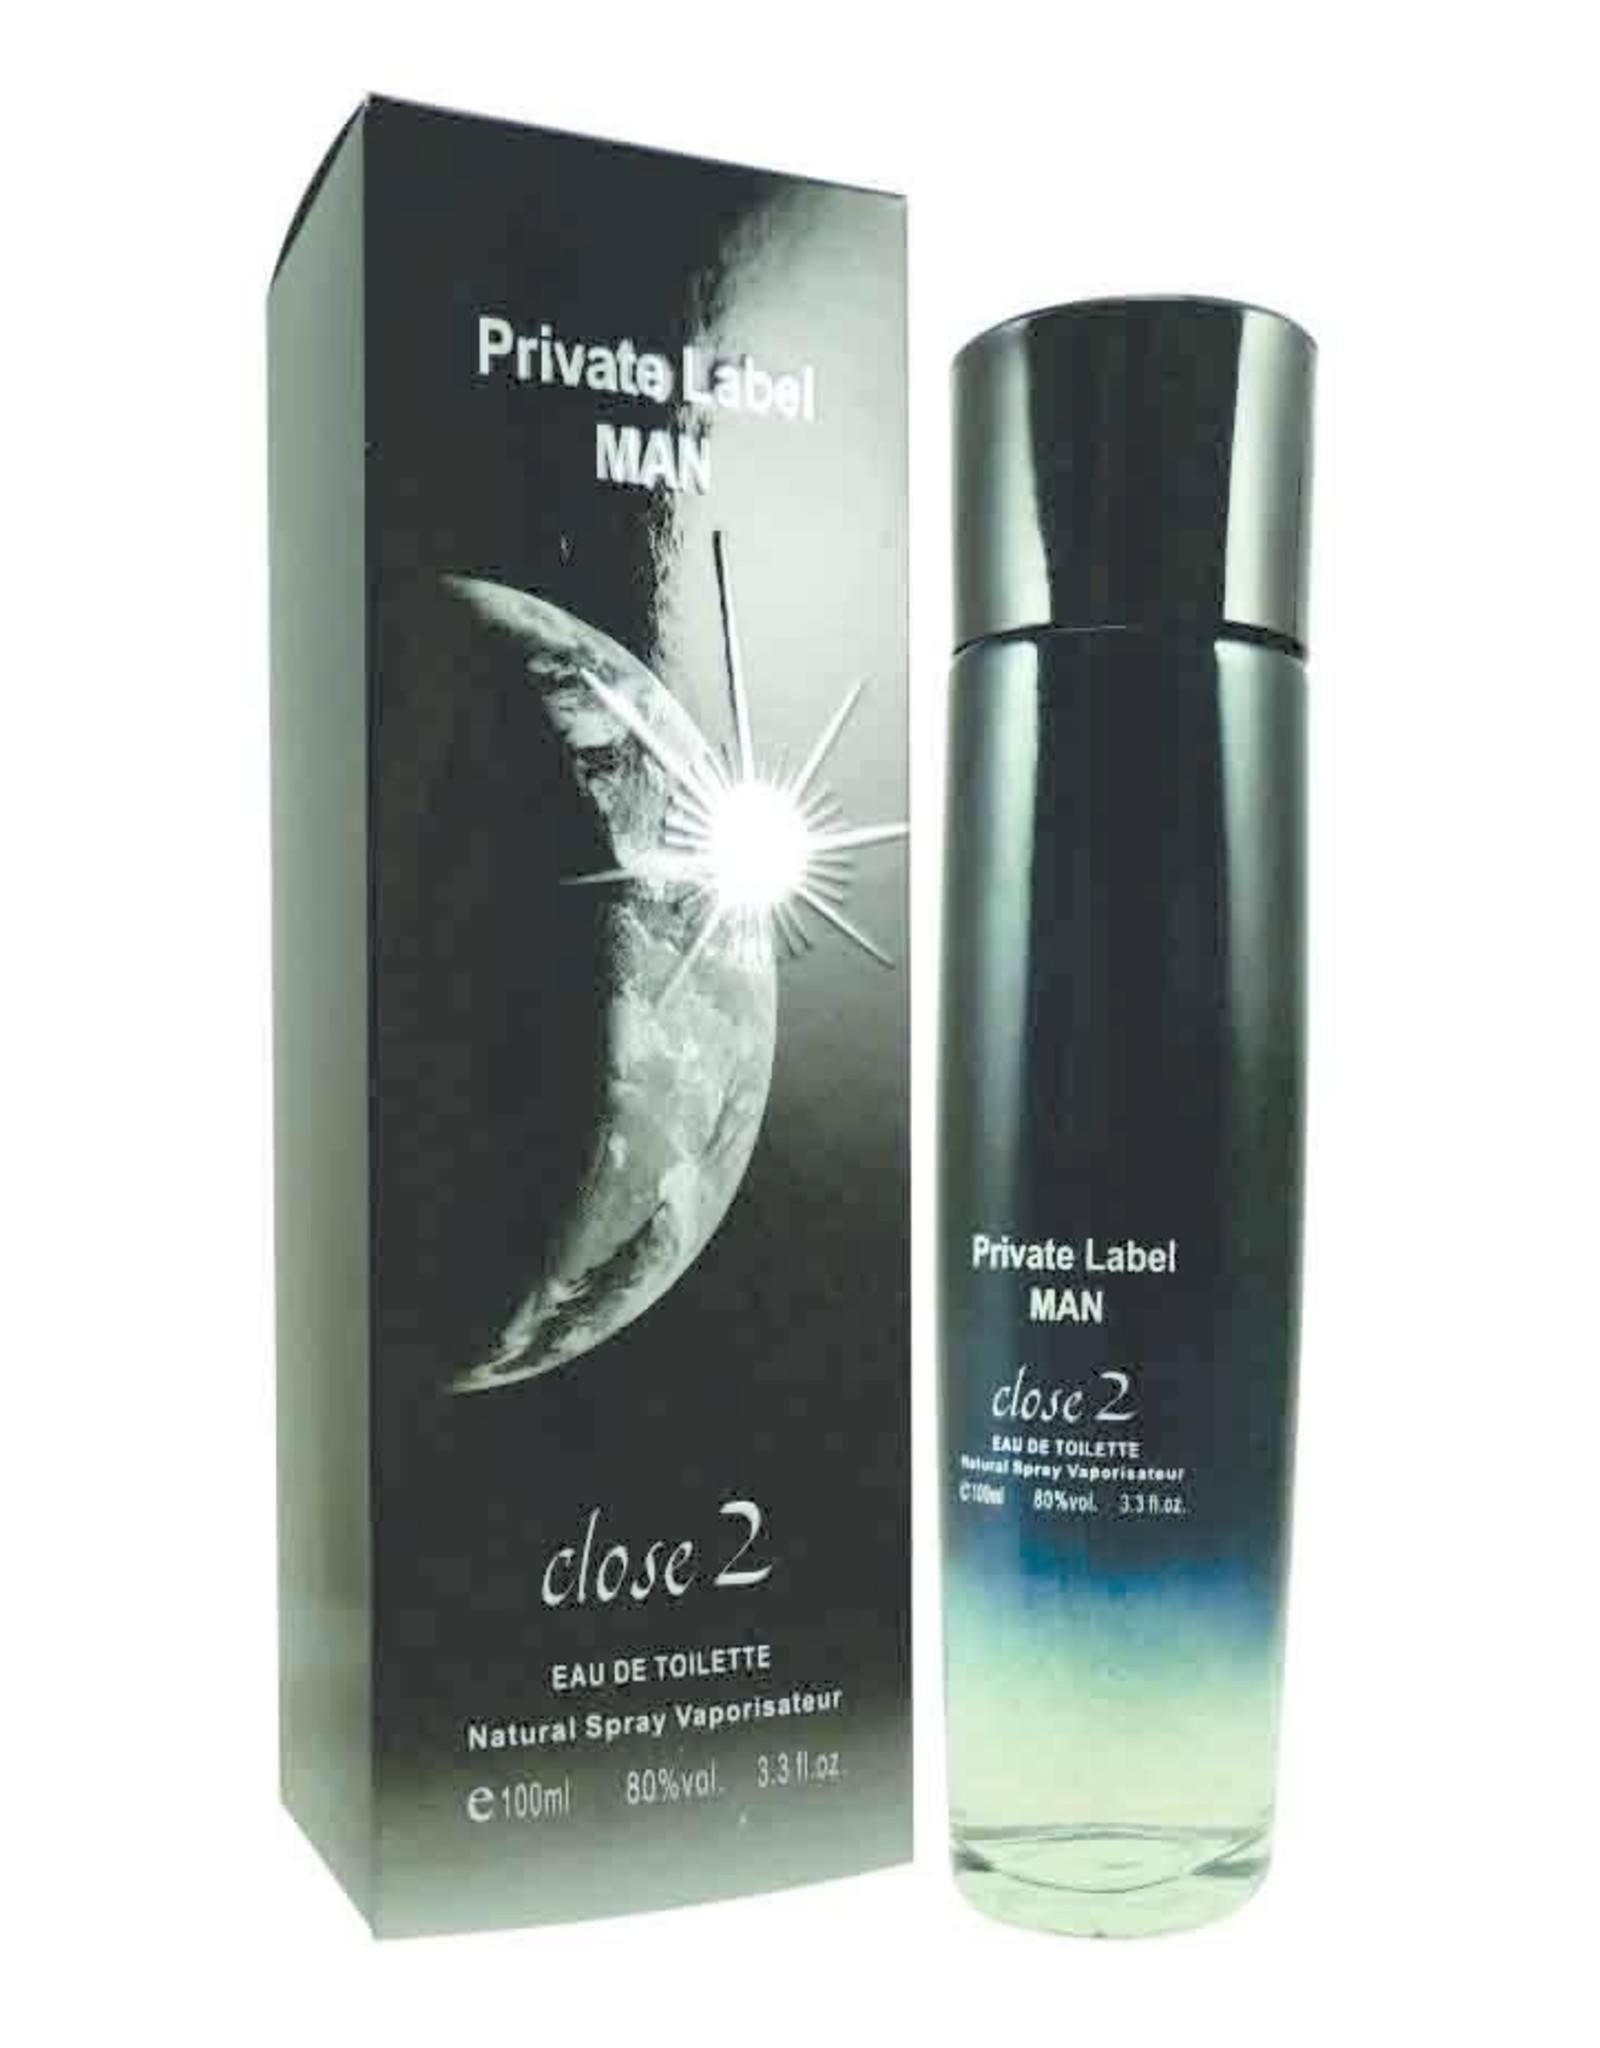 Close 2 parfums Private label EDT 100 ml